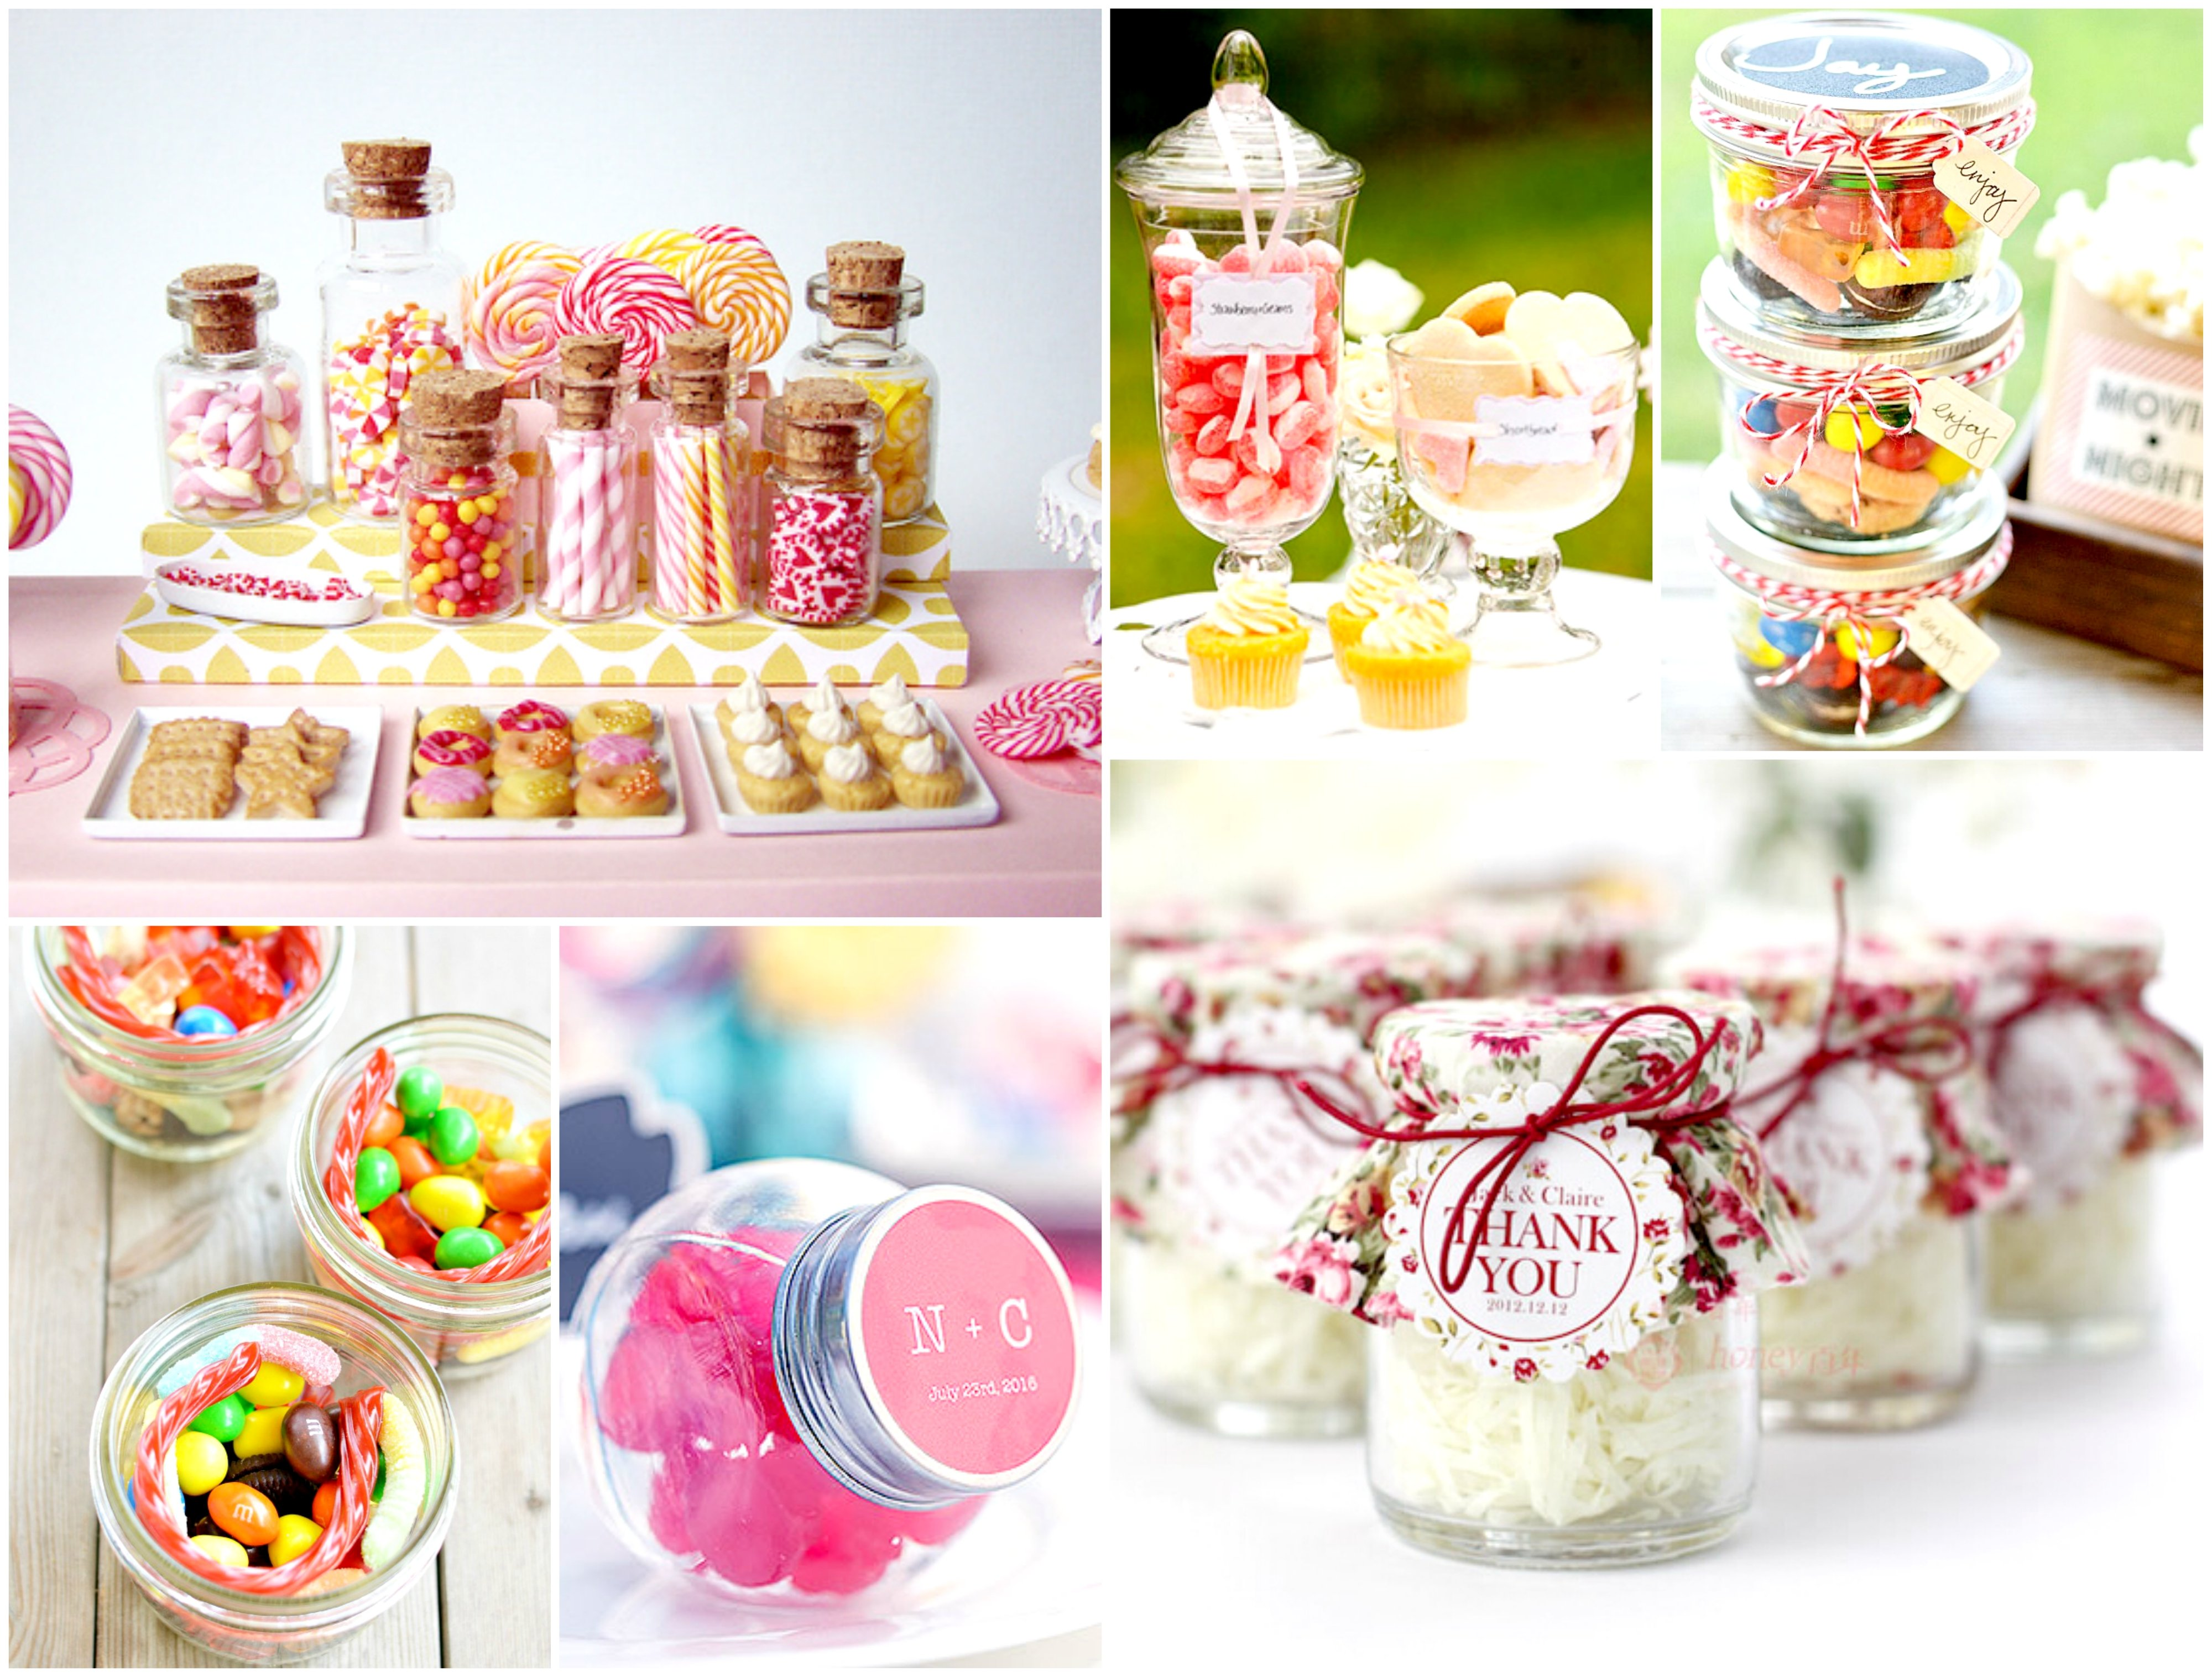 Sweets in glass vases